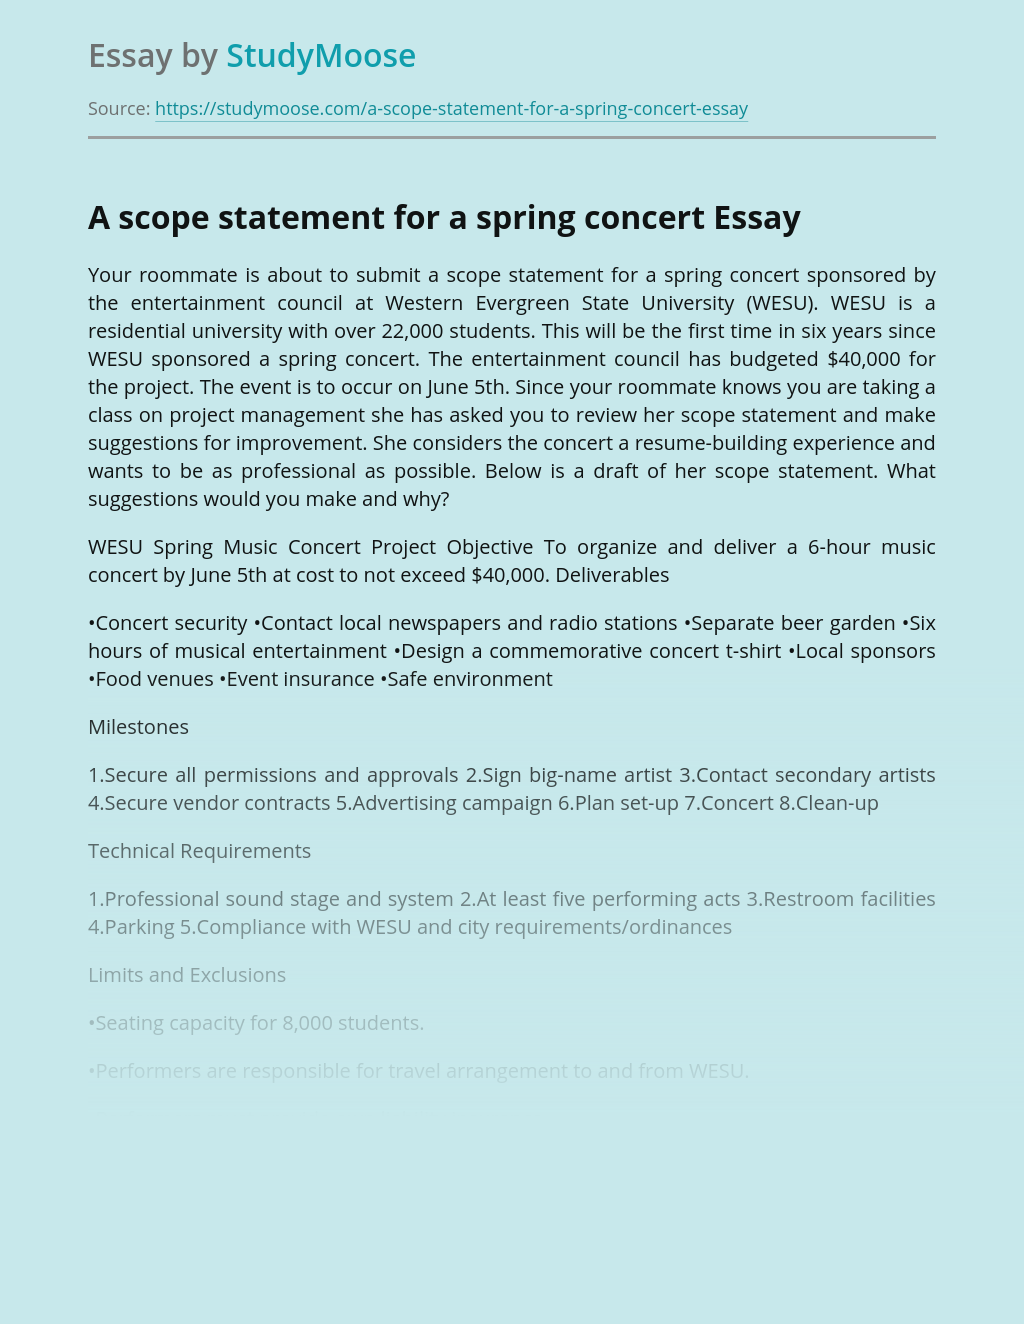 A scope statement for a spring concert